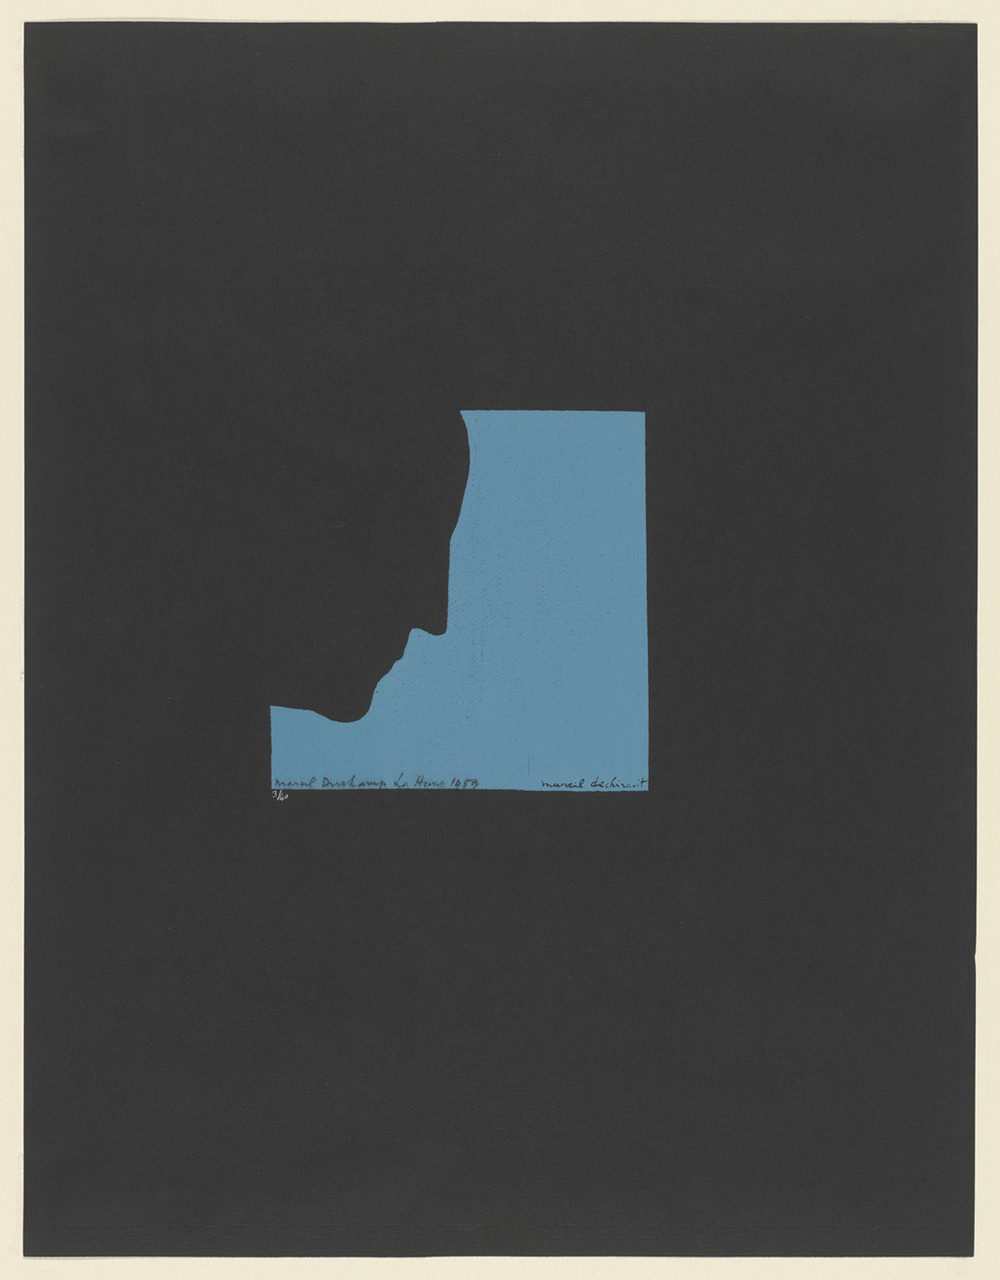 Poster after Self-Portrait in Profile, 1959